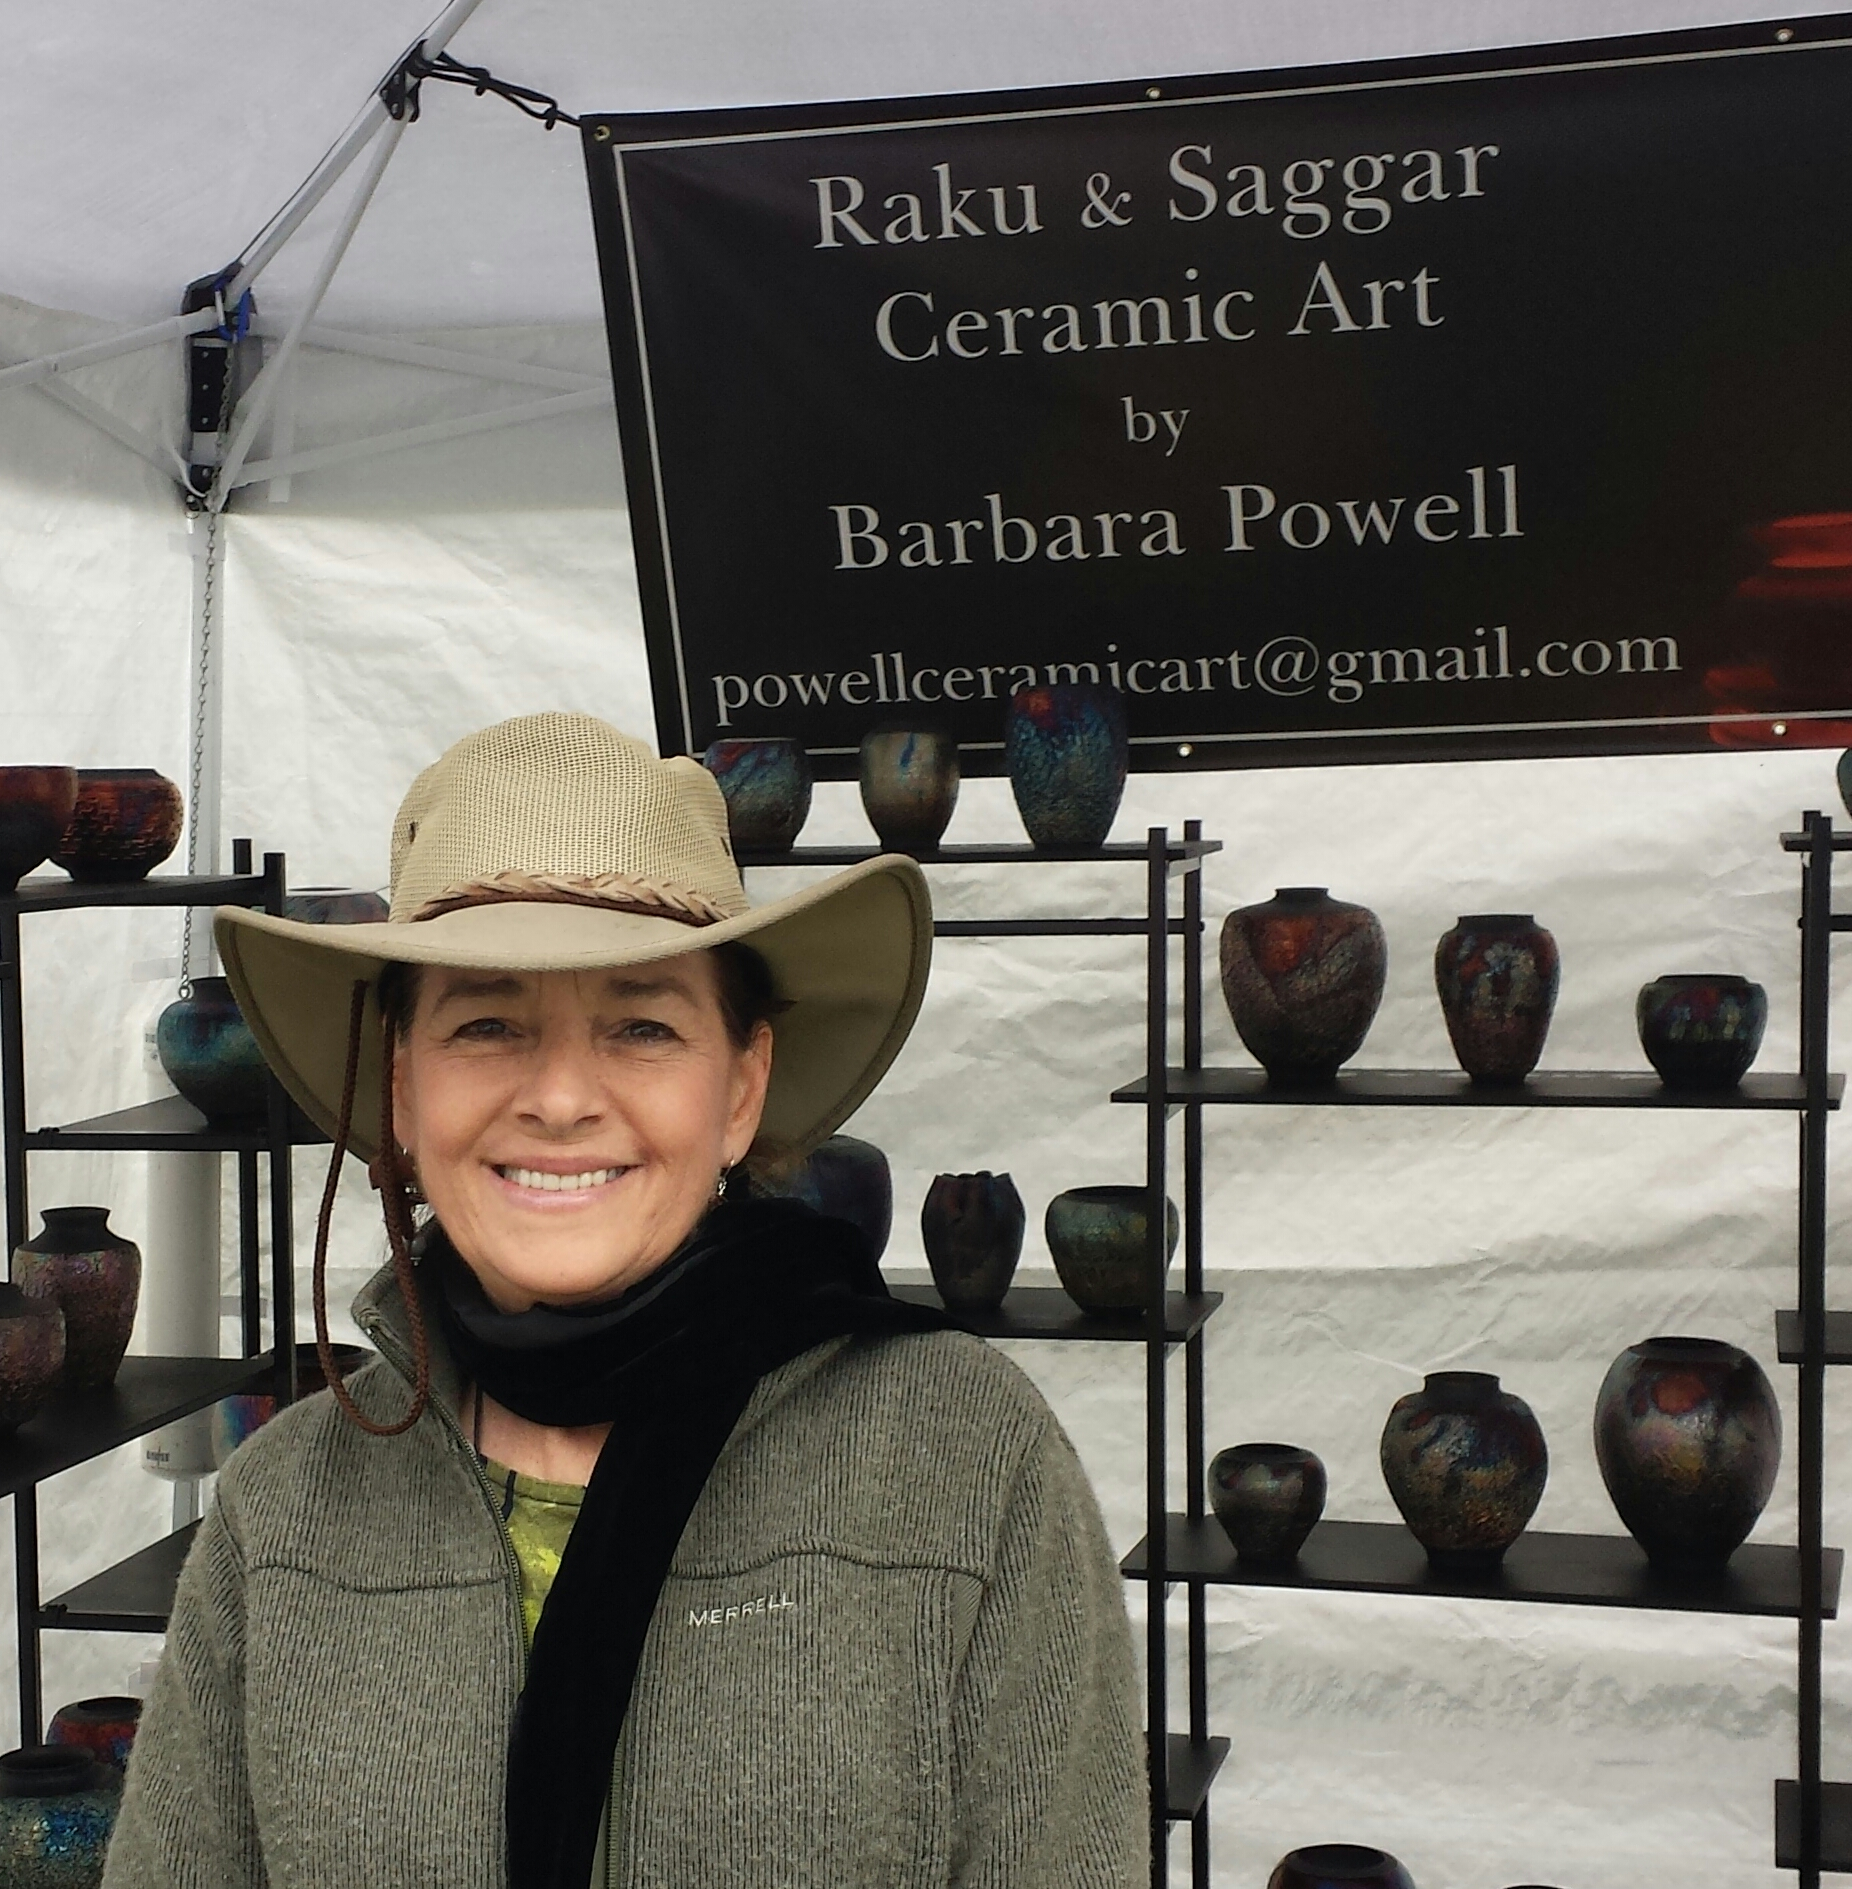 #3 Barbara Powell — Ceramic Artist Specializing in Raku and Saggar Pottery